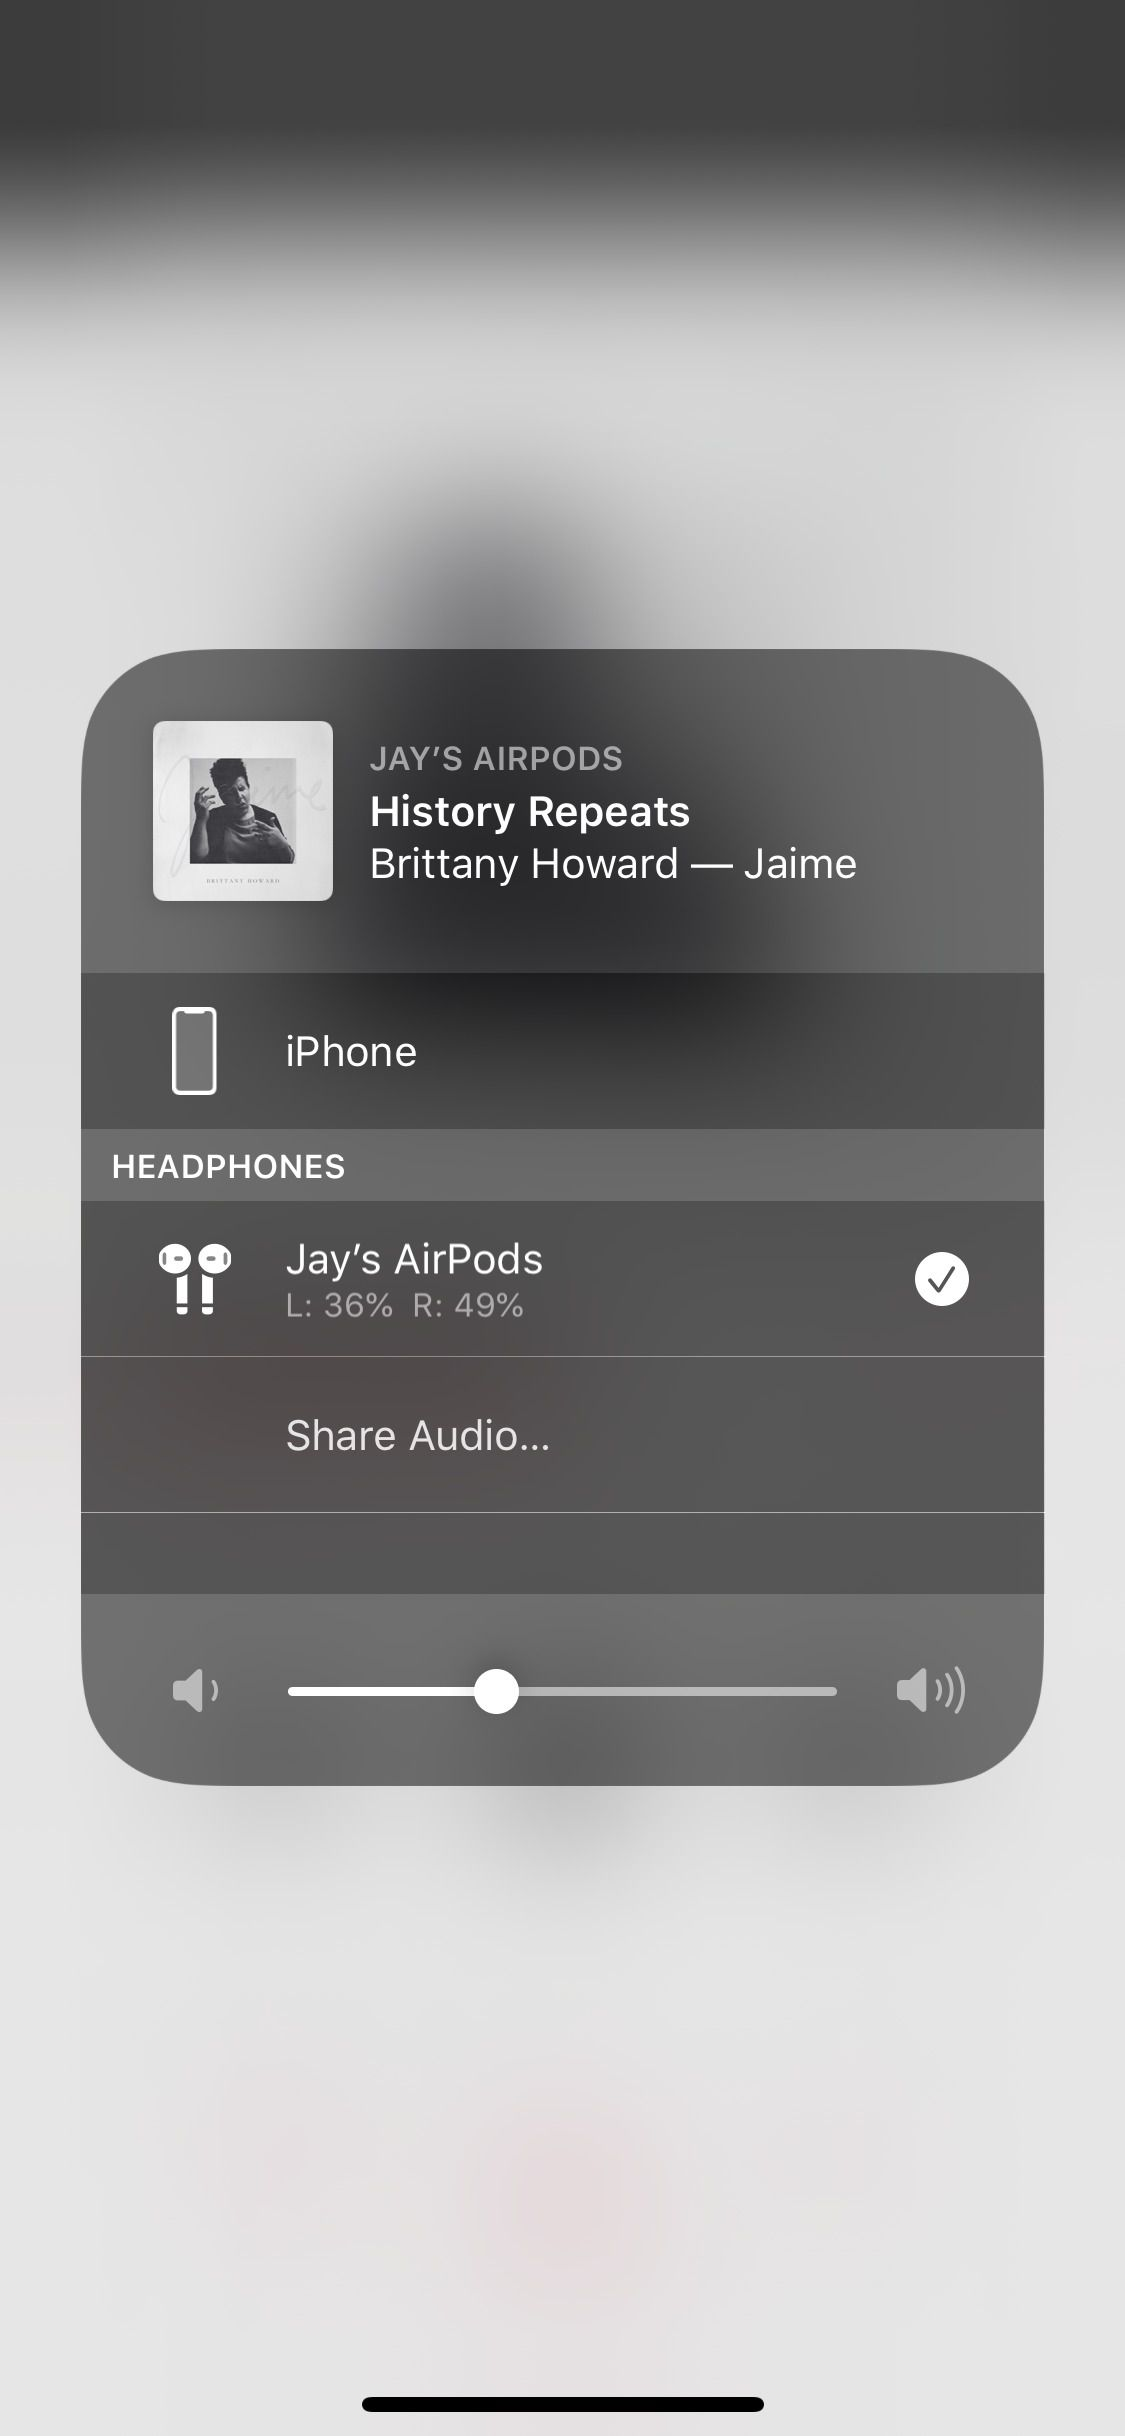 How To Share Your Audio In Ios 13 The Verge